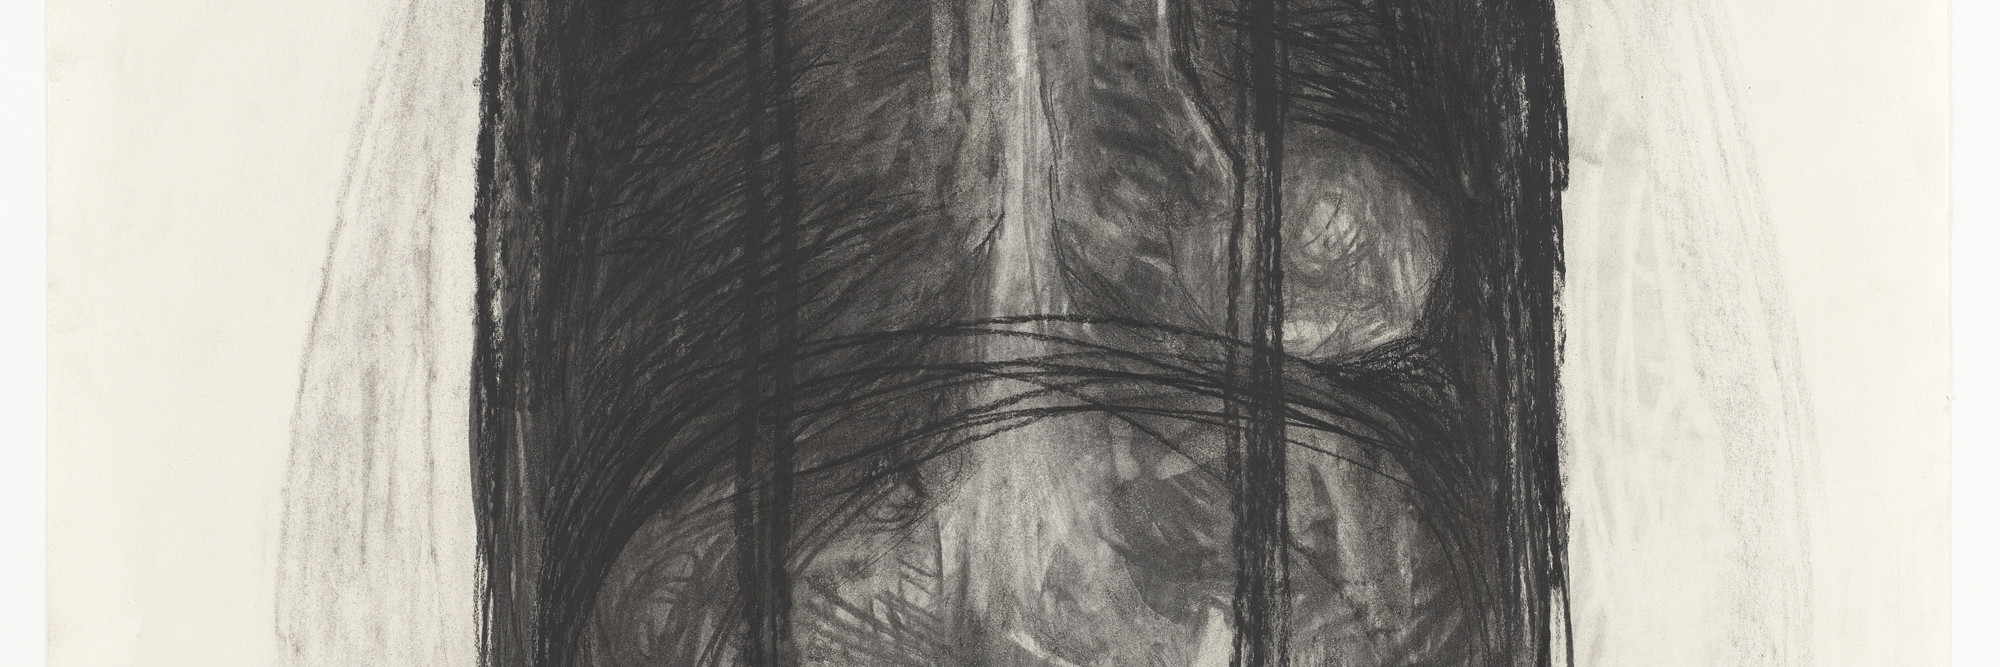 Magdalena Abakanowicz. Body 81F. 1981. Charcoal on paper, 39 3/8 × 29 5/8″ (100 × 75.3 cm). Gift of Edward R. Broida and Richard E. Salomon. © 2016 Magdalena Abakanowicz. Photo: Thomas Griesel